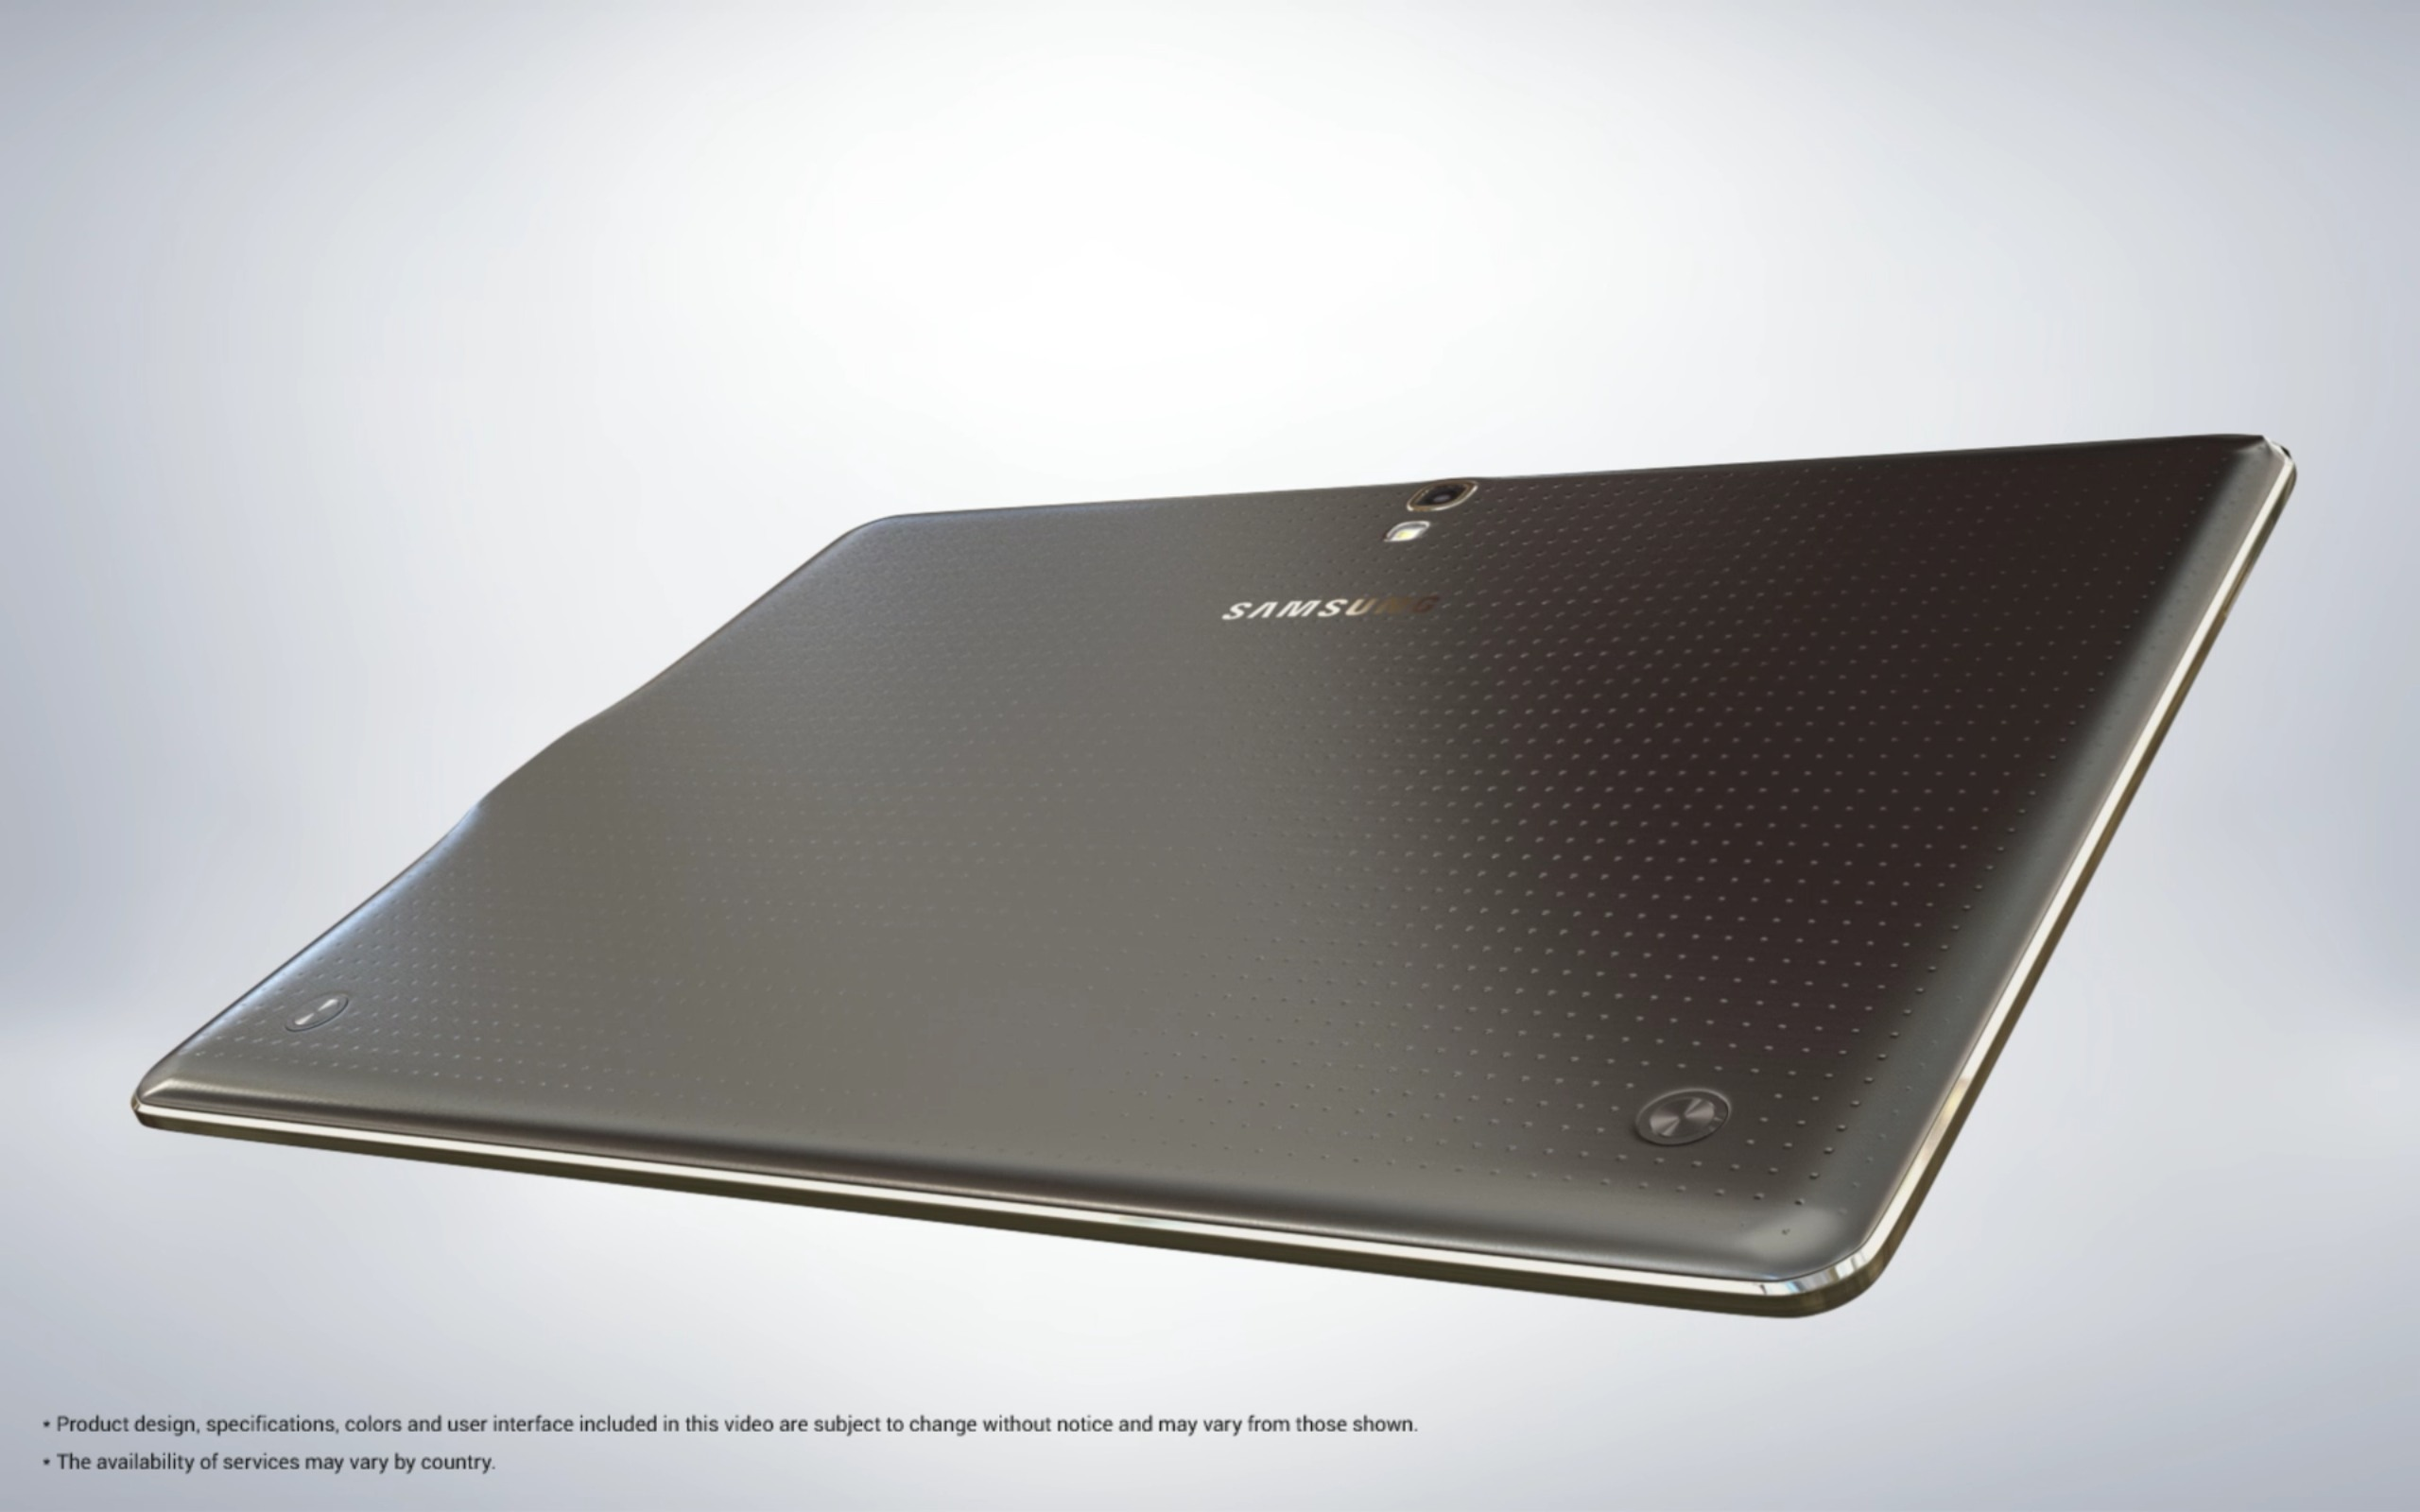 Samsung-Galaxy-Tab-S-105-new-images-07